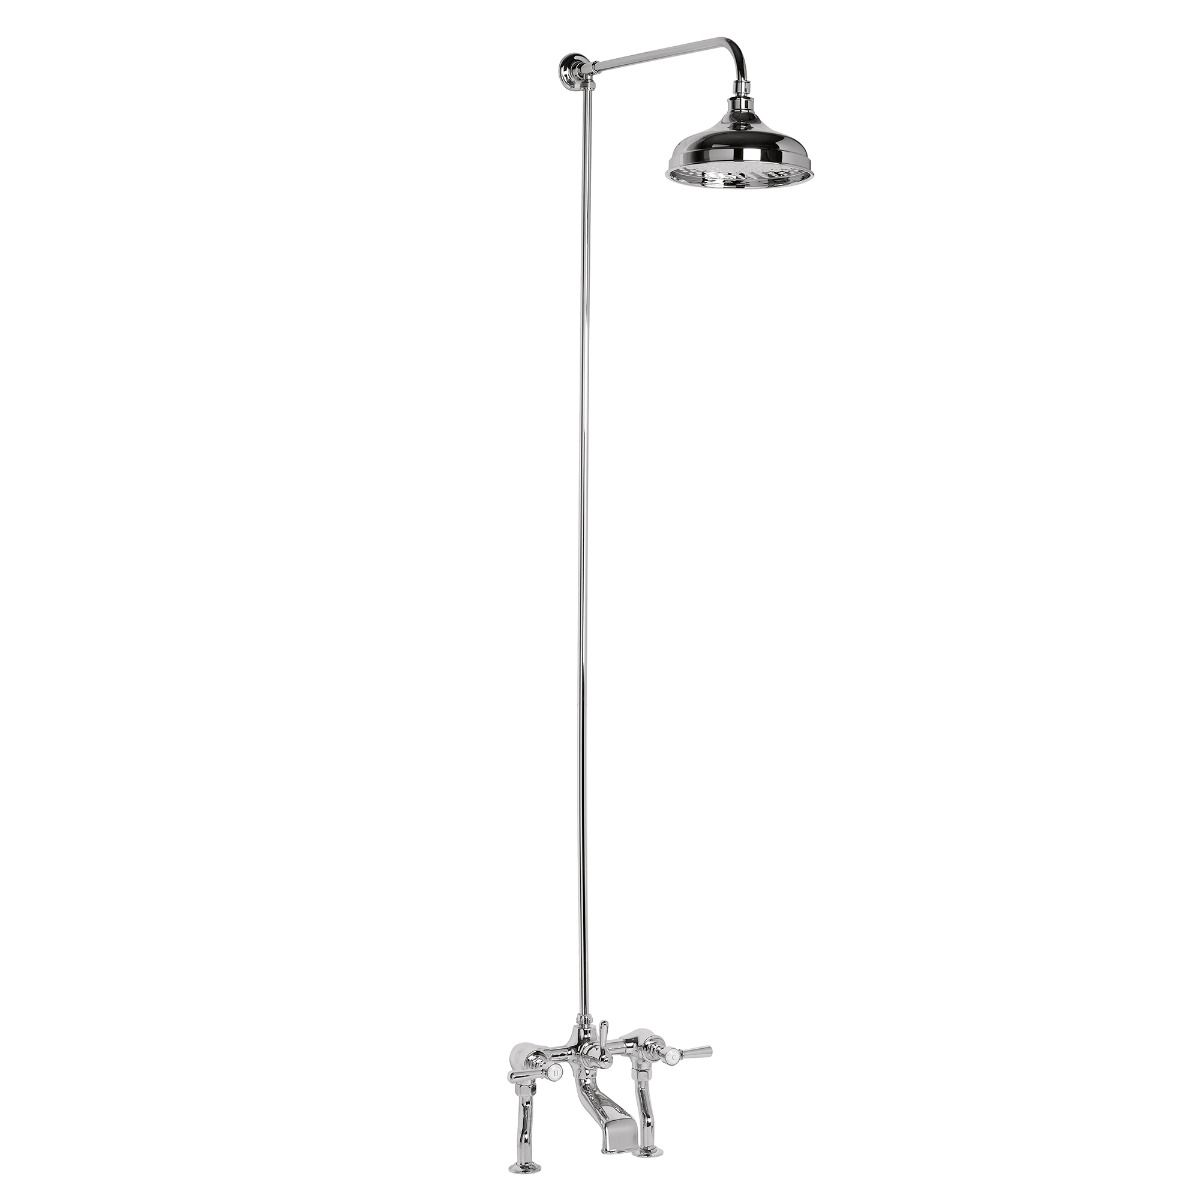 Classic Bath Mixer and Overhead Shower with Fixed Riser